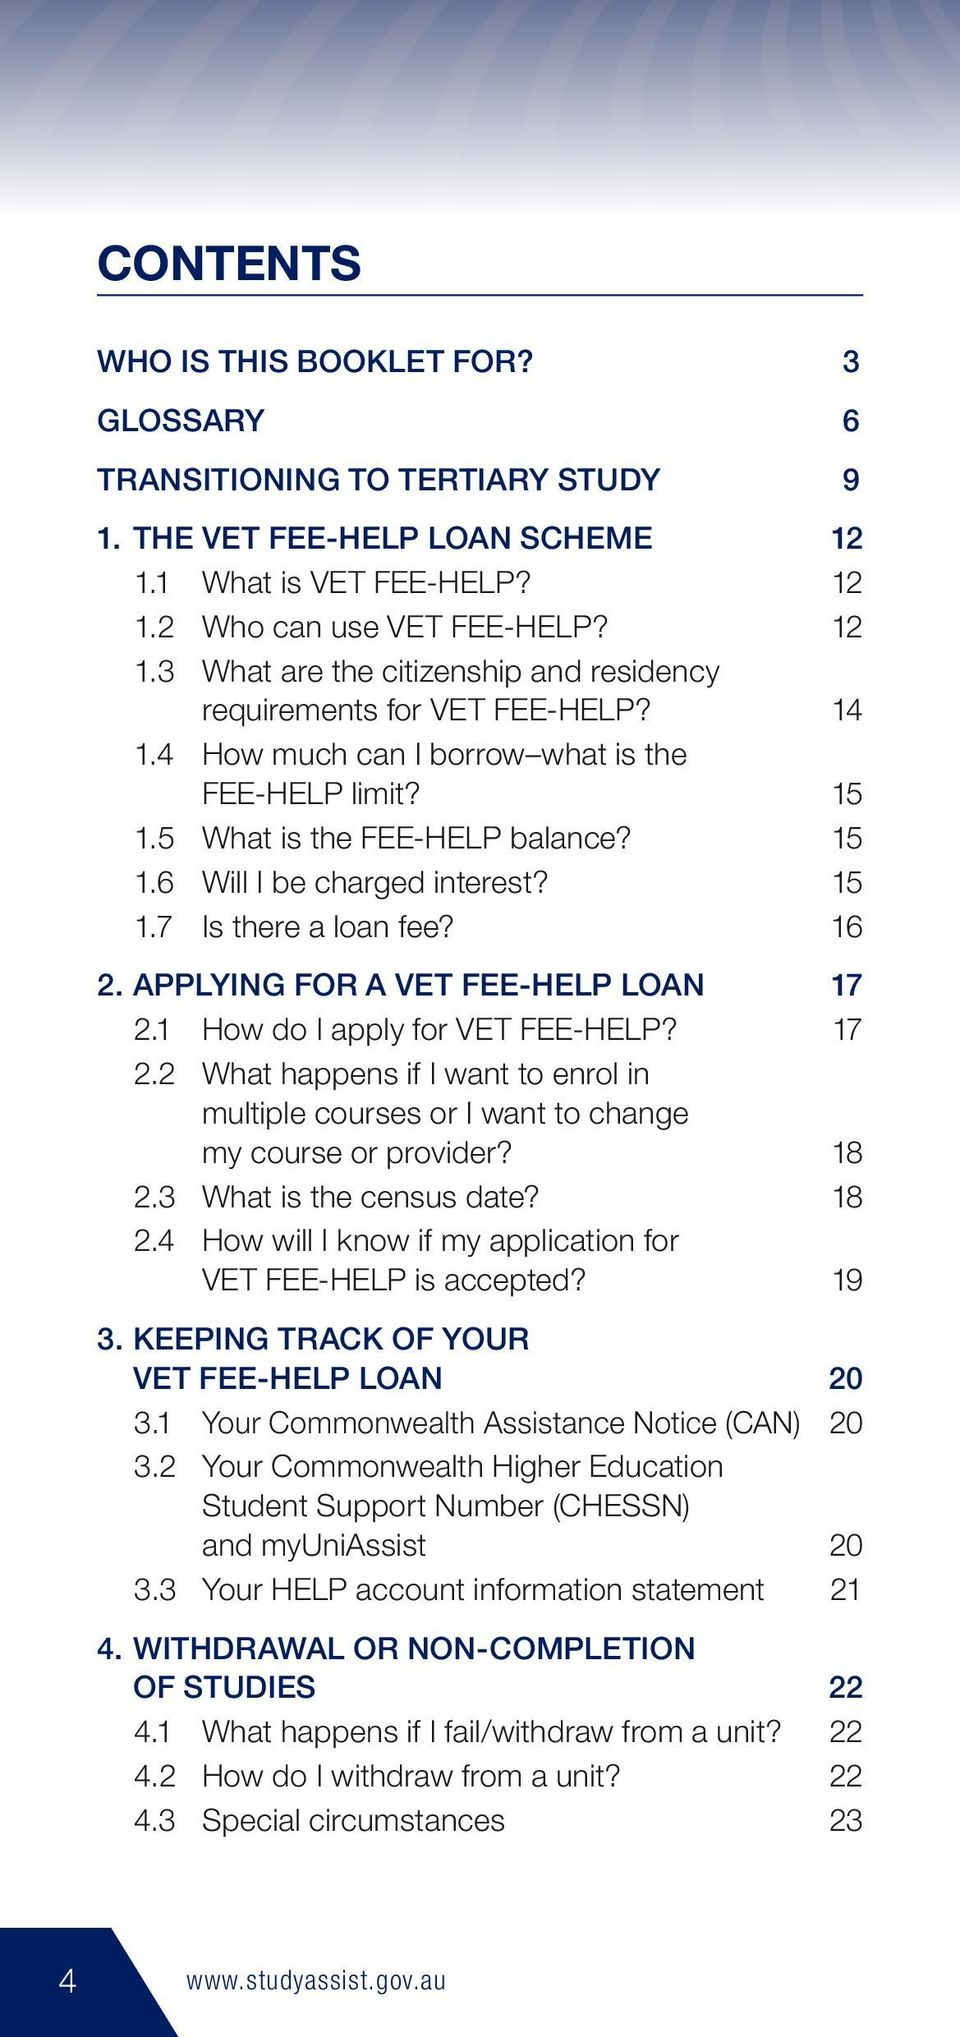 APPLYING FOR A VET FEE-HELP LOAN 17 2.1 How do I apply for VET FEE-HELP? 17 2.2 What happens if I want to enrol in multiple courses or I want to change my course or provider? 18 2.